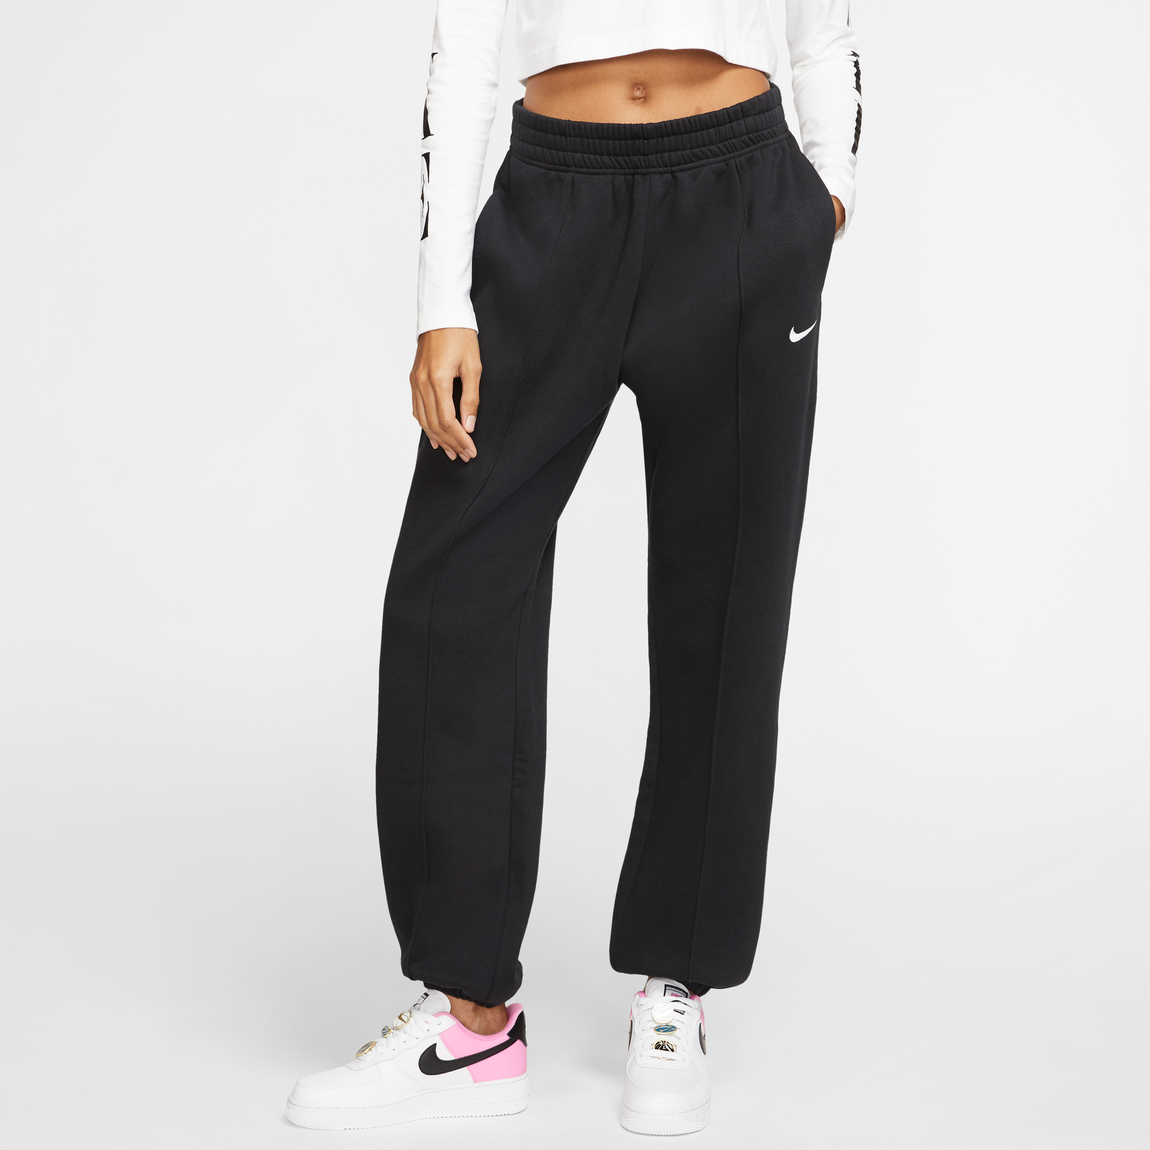 Nike Sportswear Women's Essential Pants (Black/Black) - Nike Sportswear Women's Essential Pants (Black/Black) -